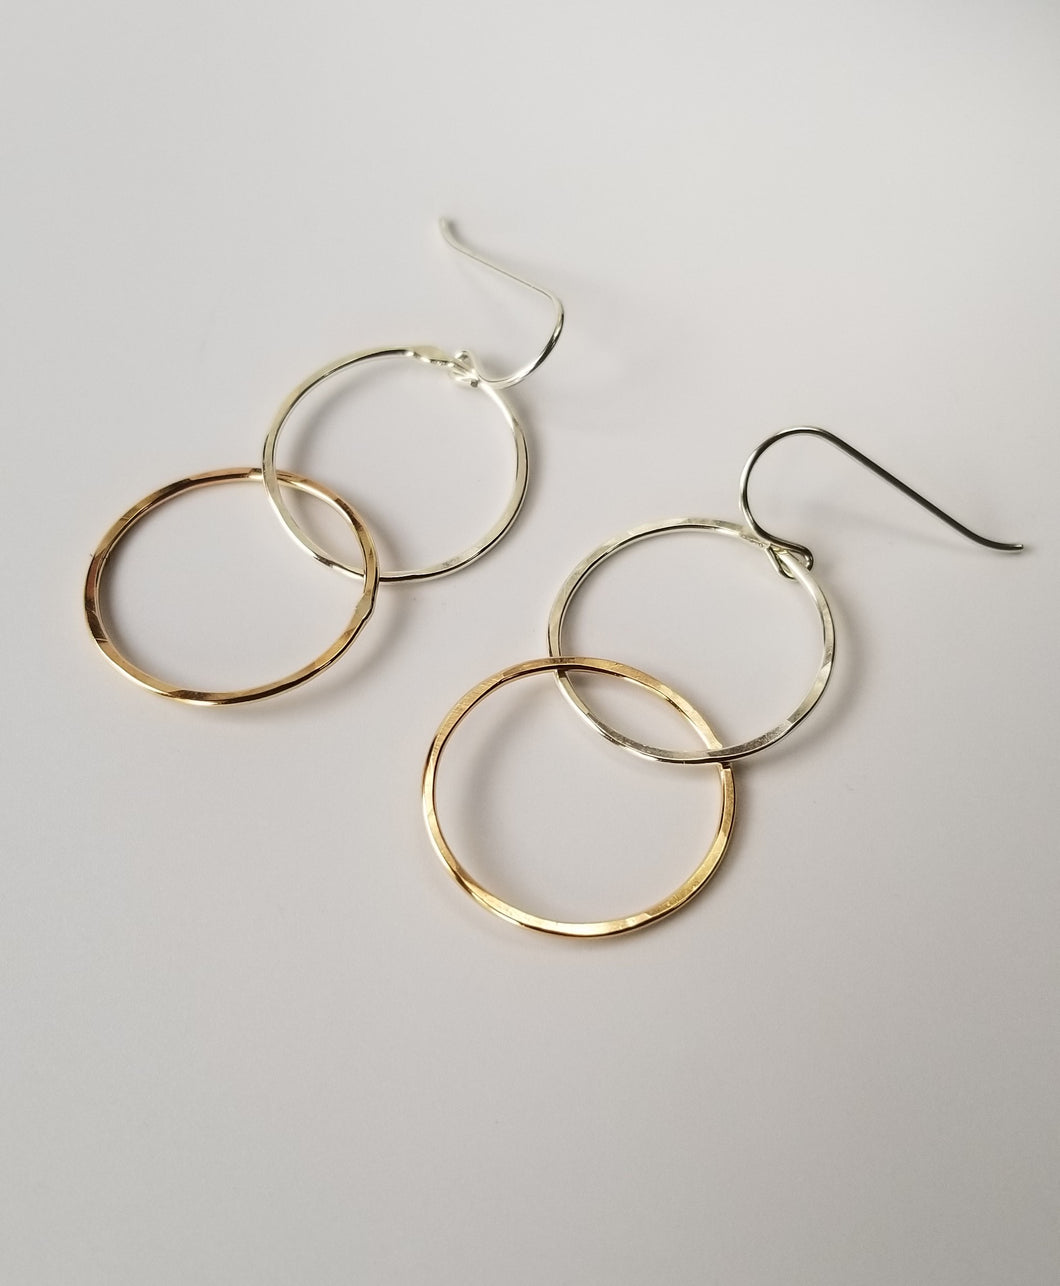 Mixed Metal Bubble Earrings in Sterling Silver and 14 Karat Gold Fill 14/20